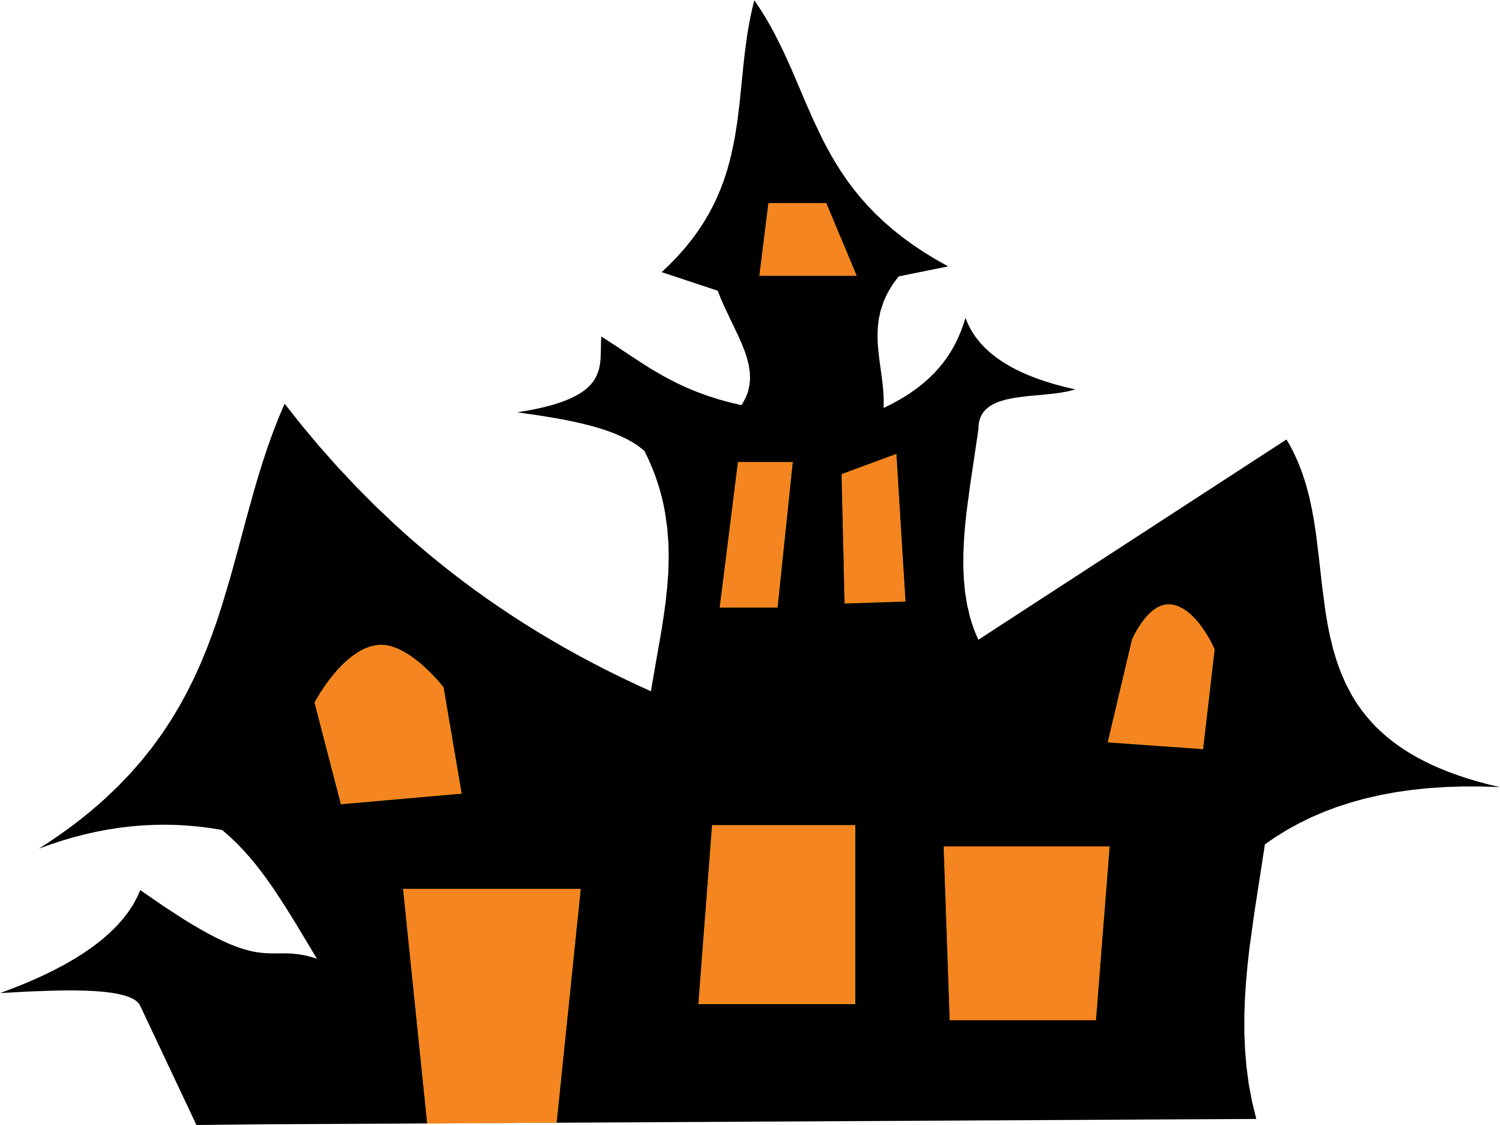 Haunted house clip art. Easy spooky pumpkin clipart black and white